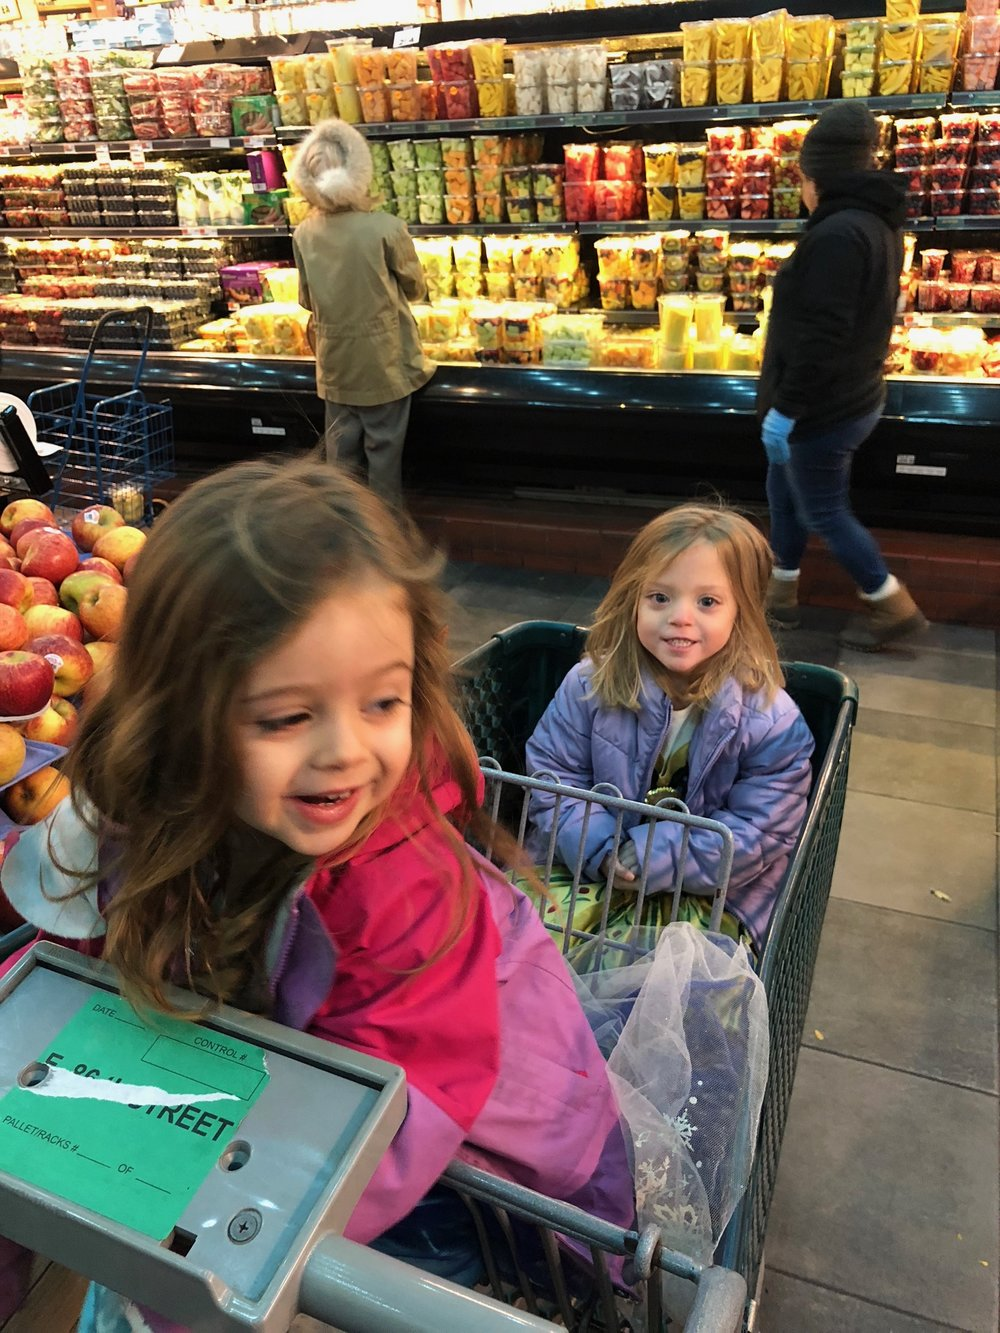 Earlier that day they had adventures at the grocery store, so fun!